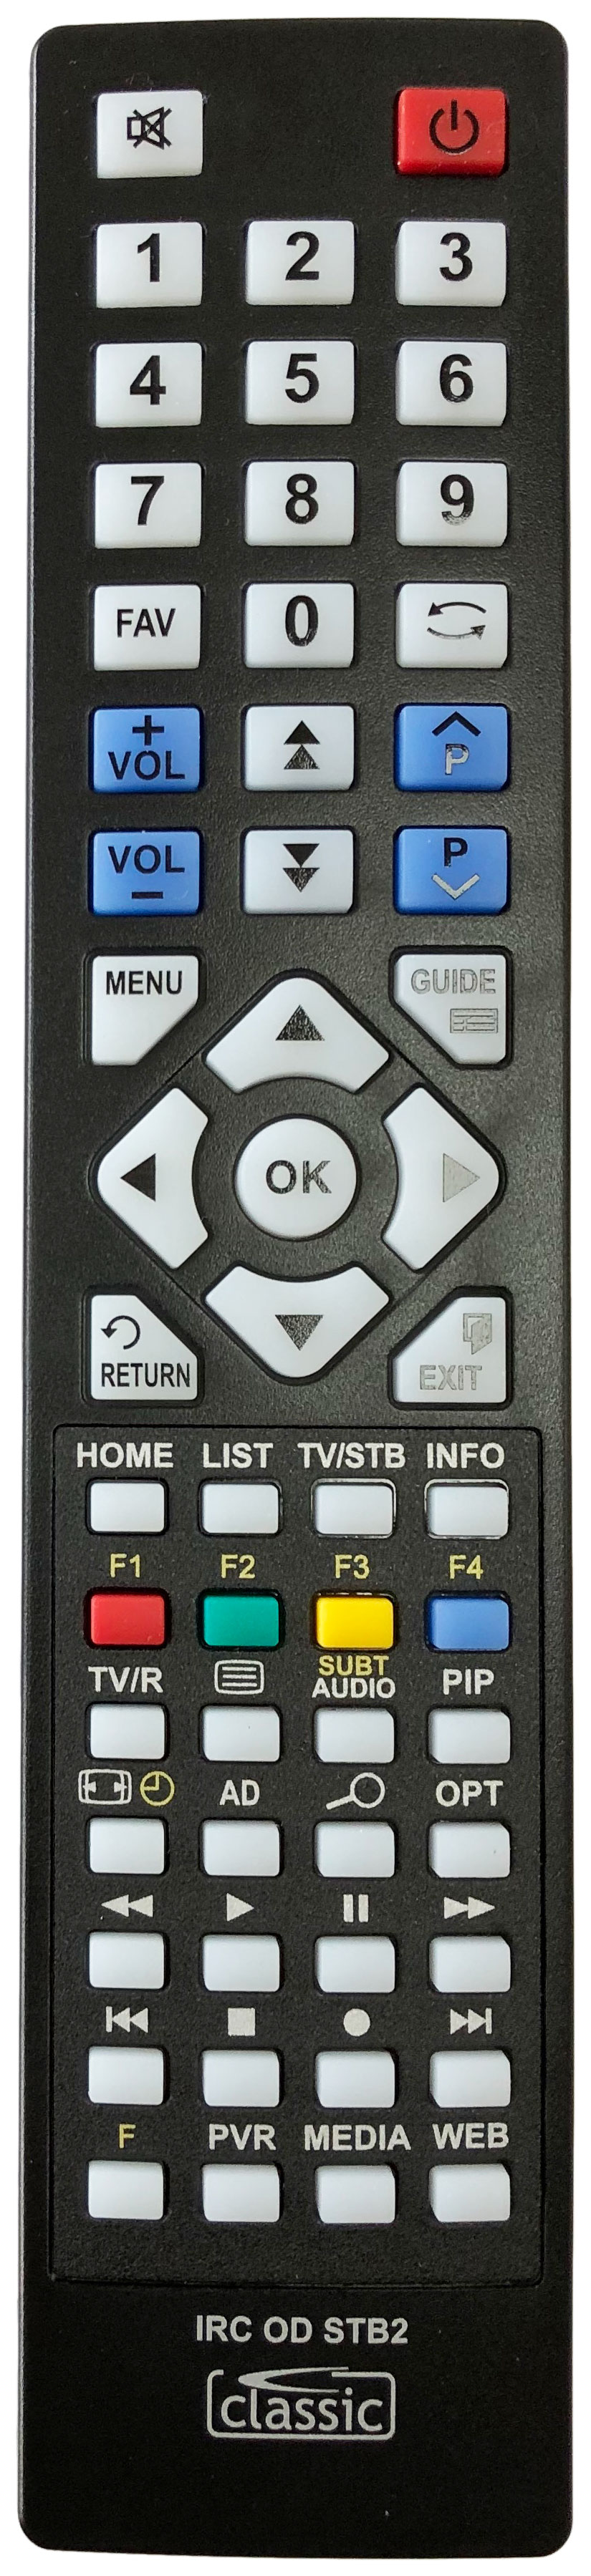 TOPFIELD TF 5100PVR MASTERPIECE Remote Control